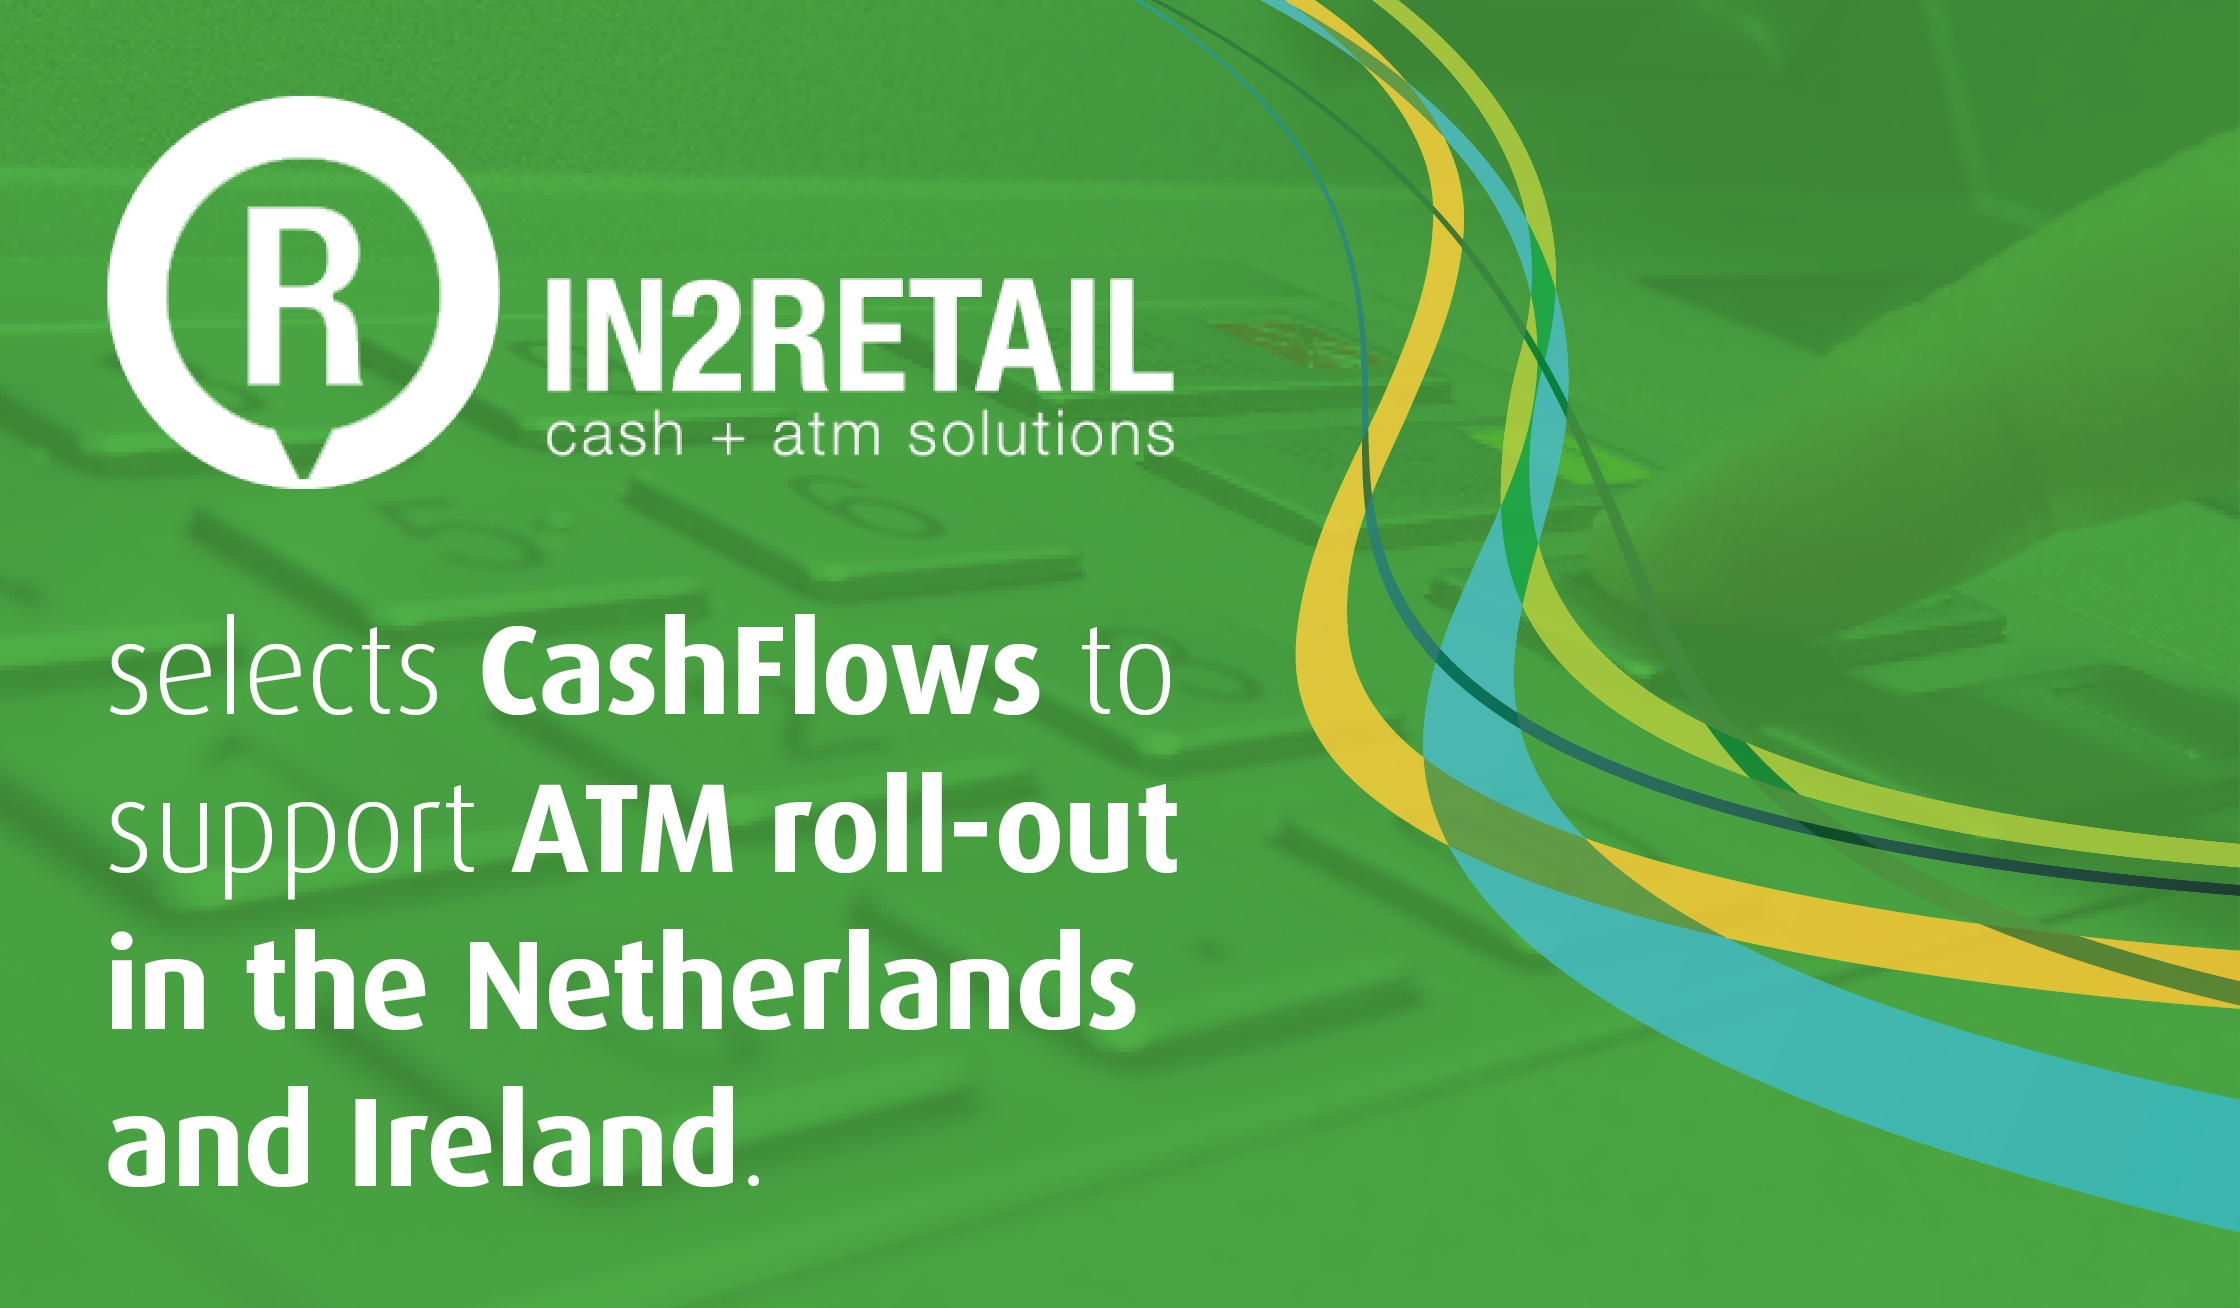 IN2Retail selects CashFlows for European ATM roll-out